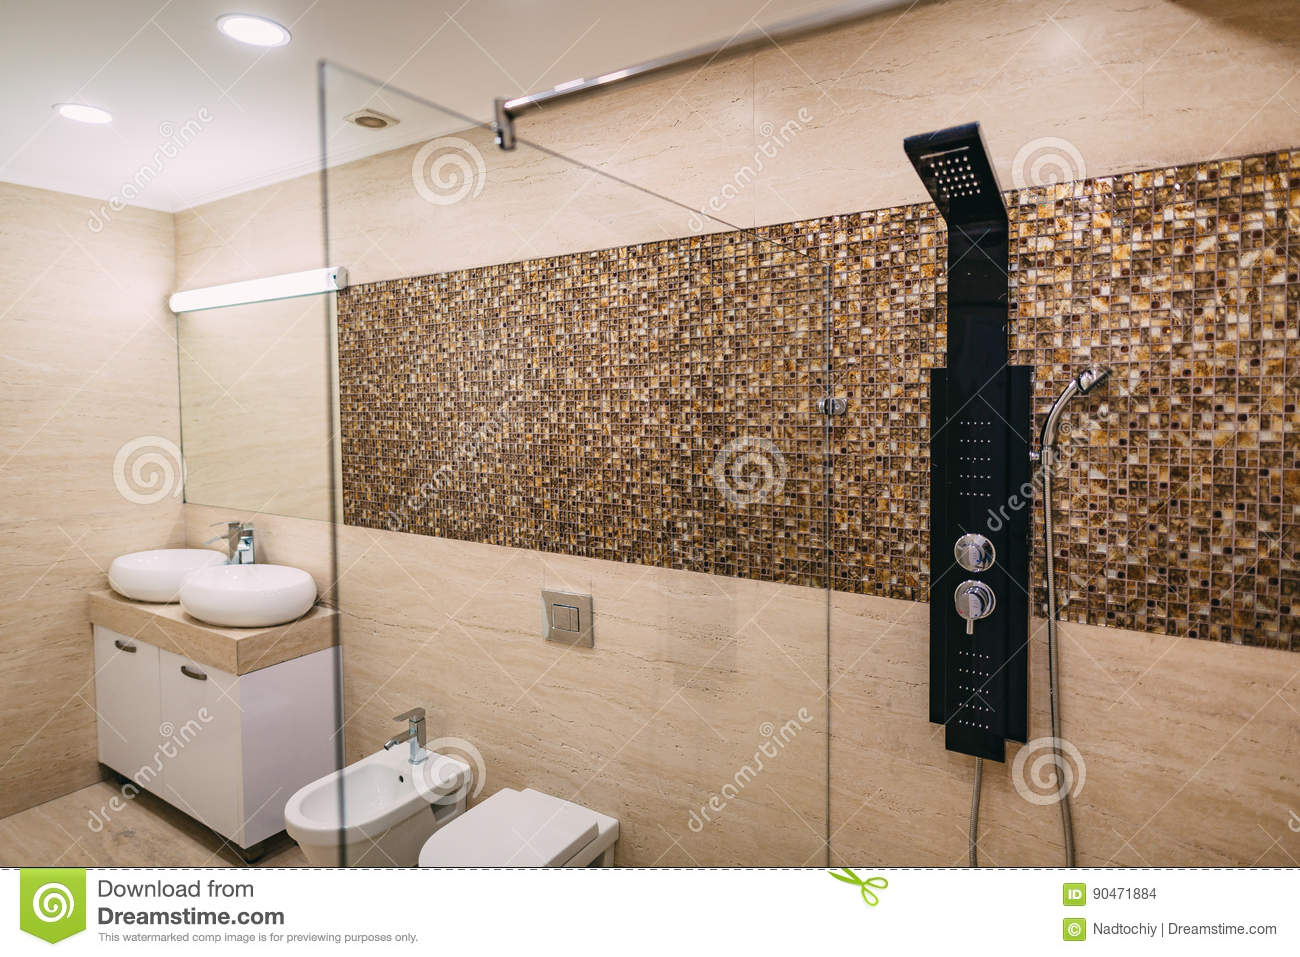 Shower Head In The Bathroom Stock Photo - Image of color, bathtub ...